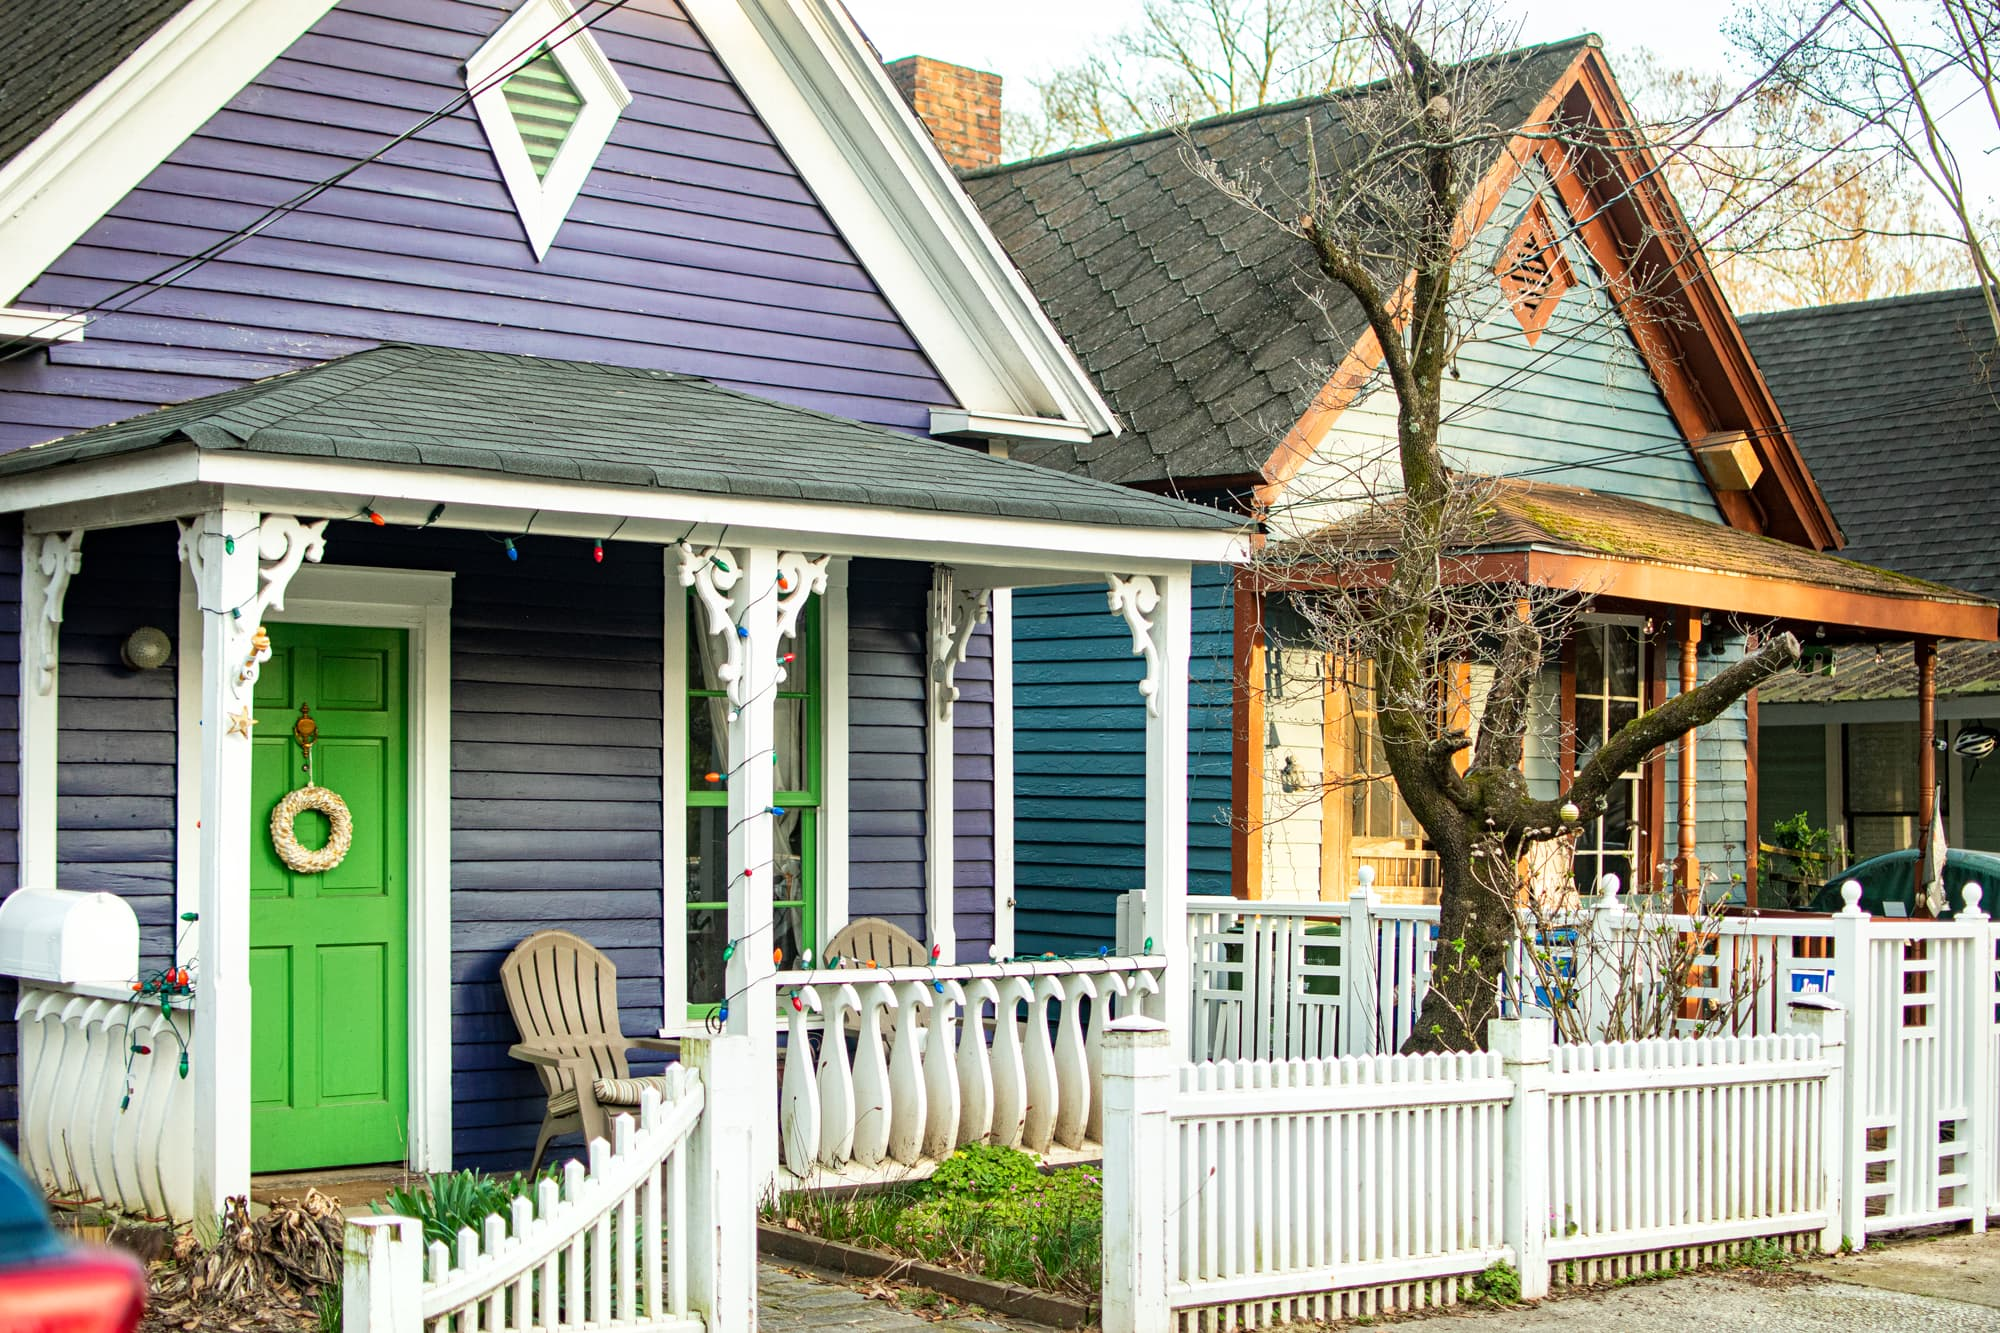 Photo of colorful homes on the streets of Cabbagetown.